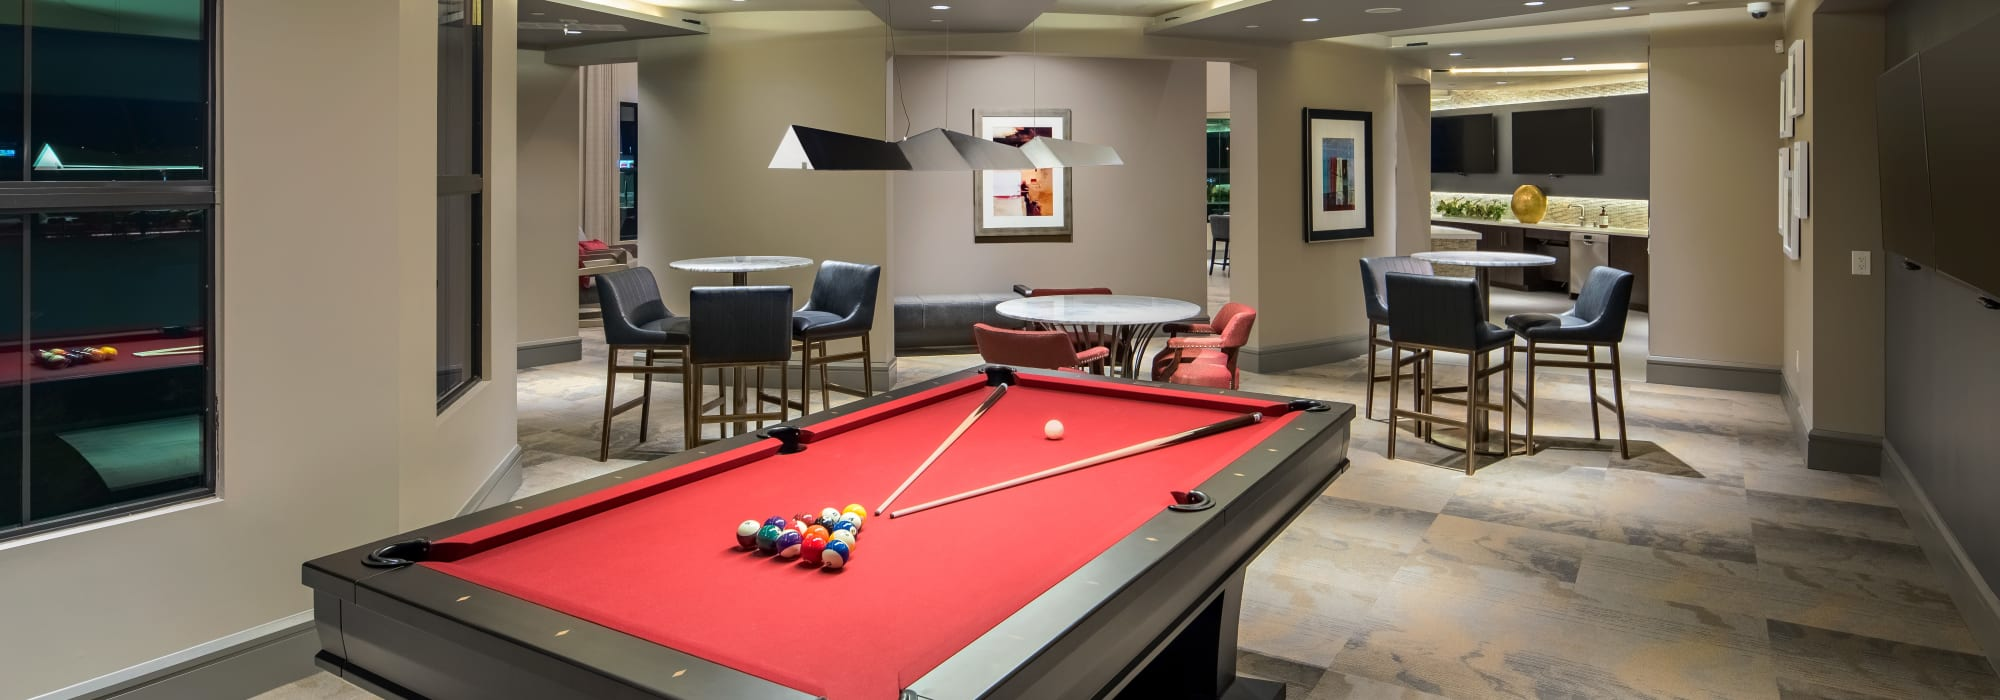 Luxurious game room with billiards table and more at The Core Scottsdale in Scottsdale, Arizona